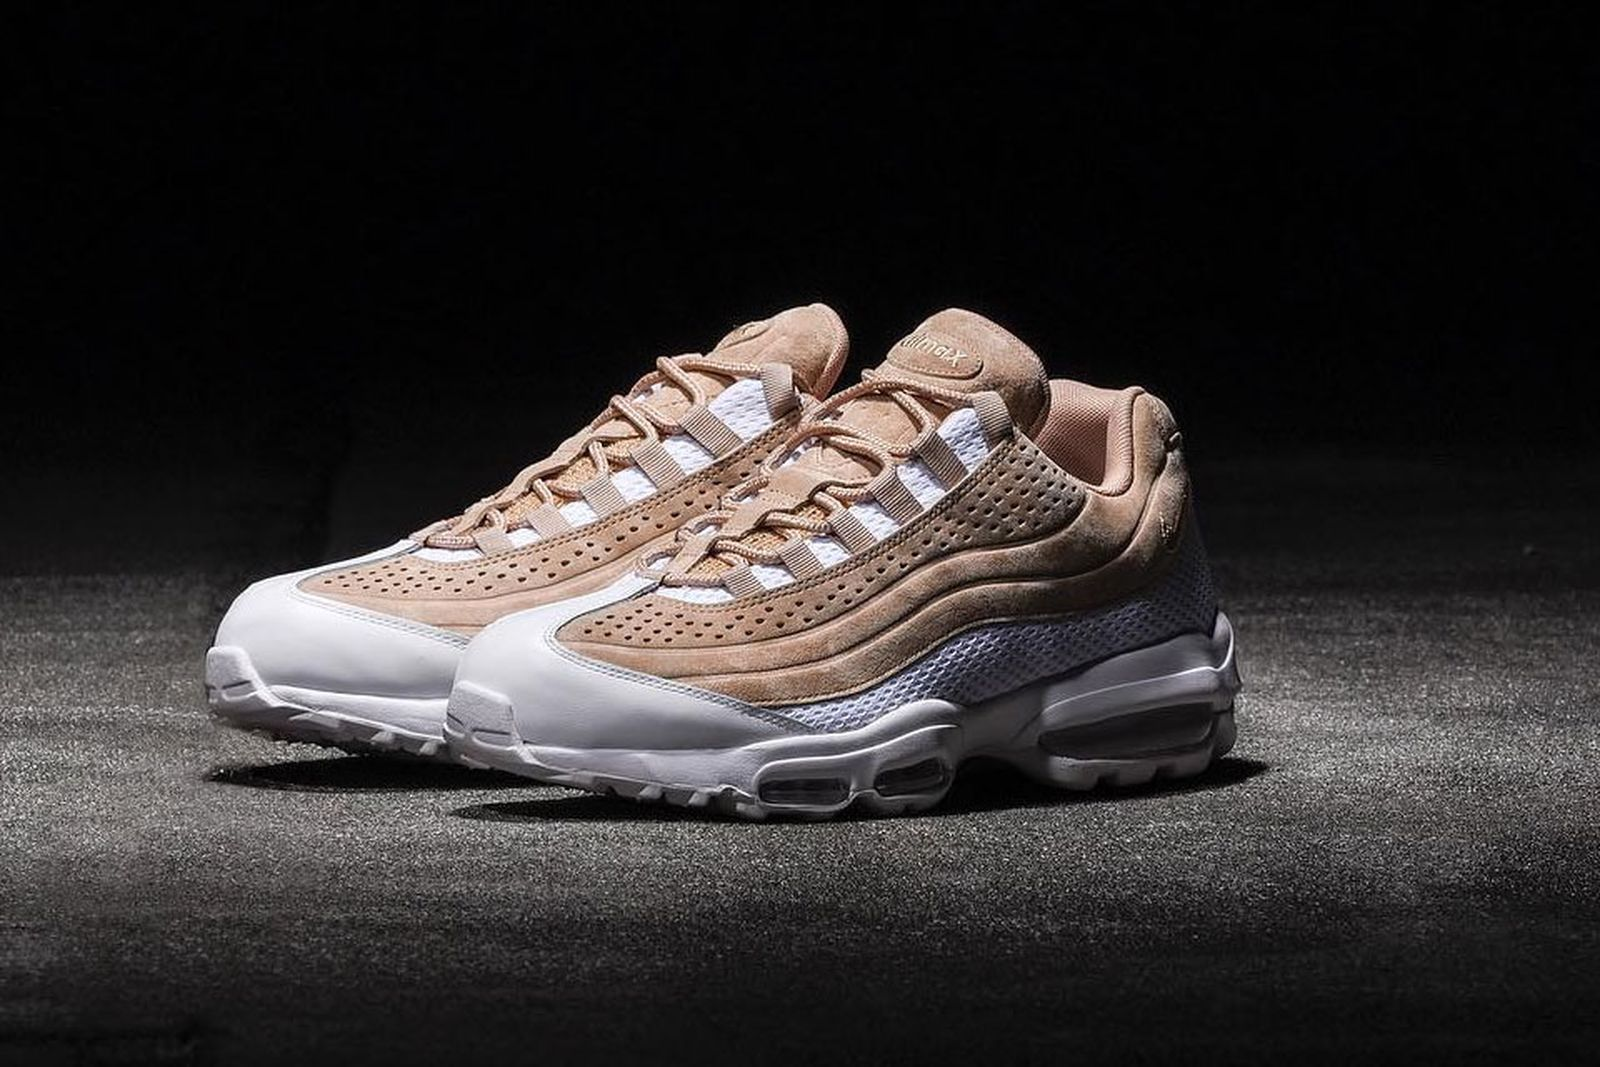 nike-air-max-95-ultra-prm-breathe-pack-release-date-buy-04